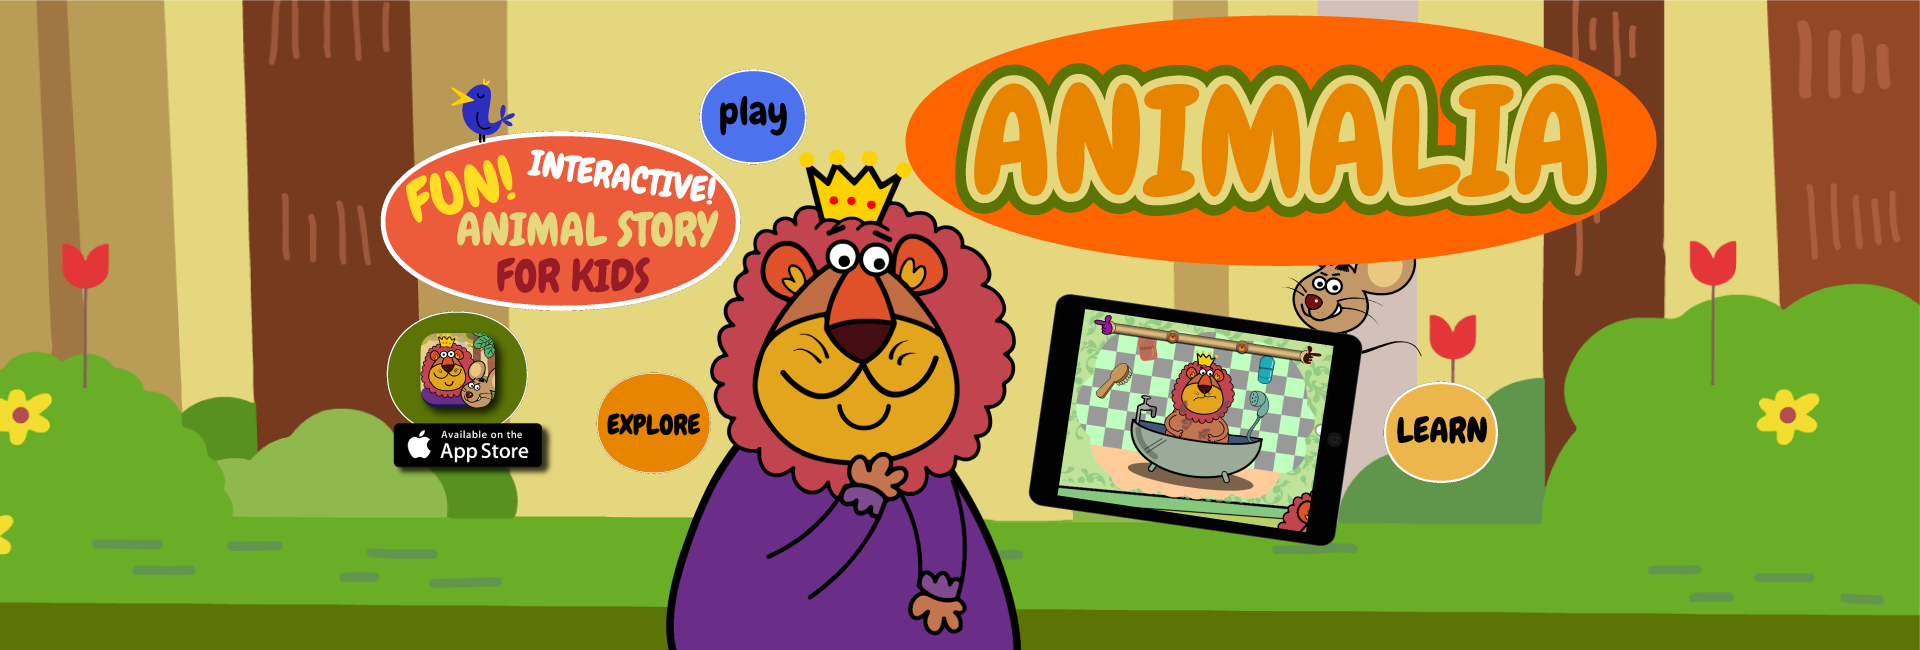 animalia-interactive-story-learning-games-ios-home